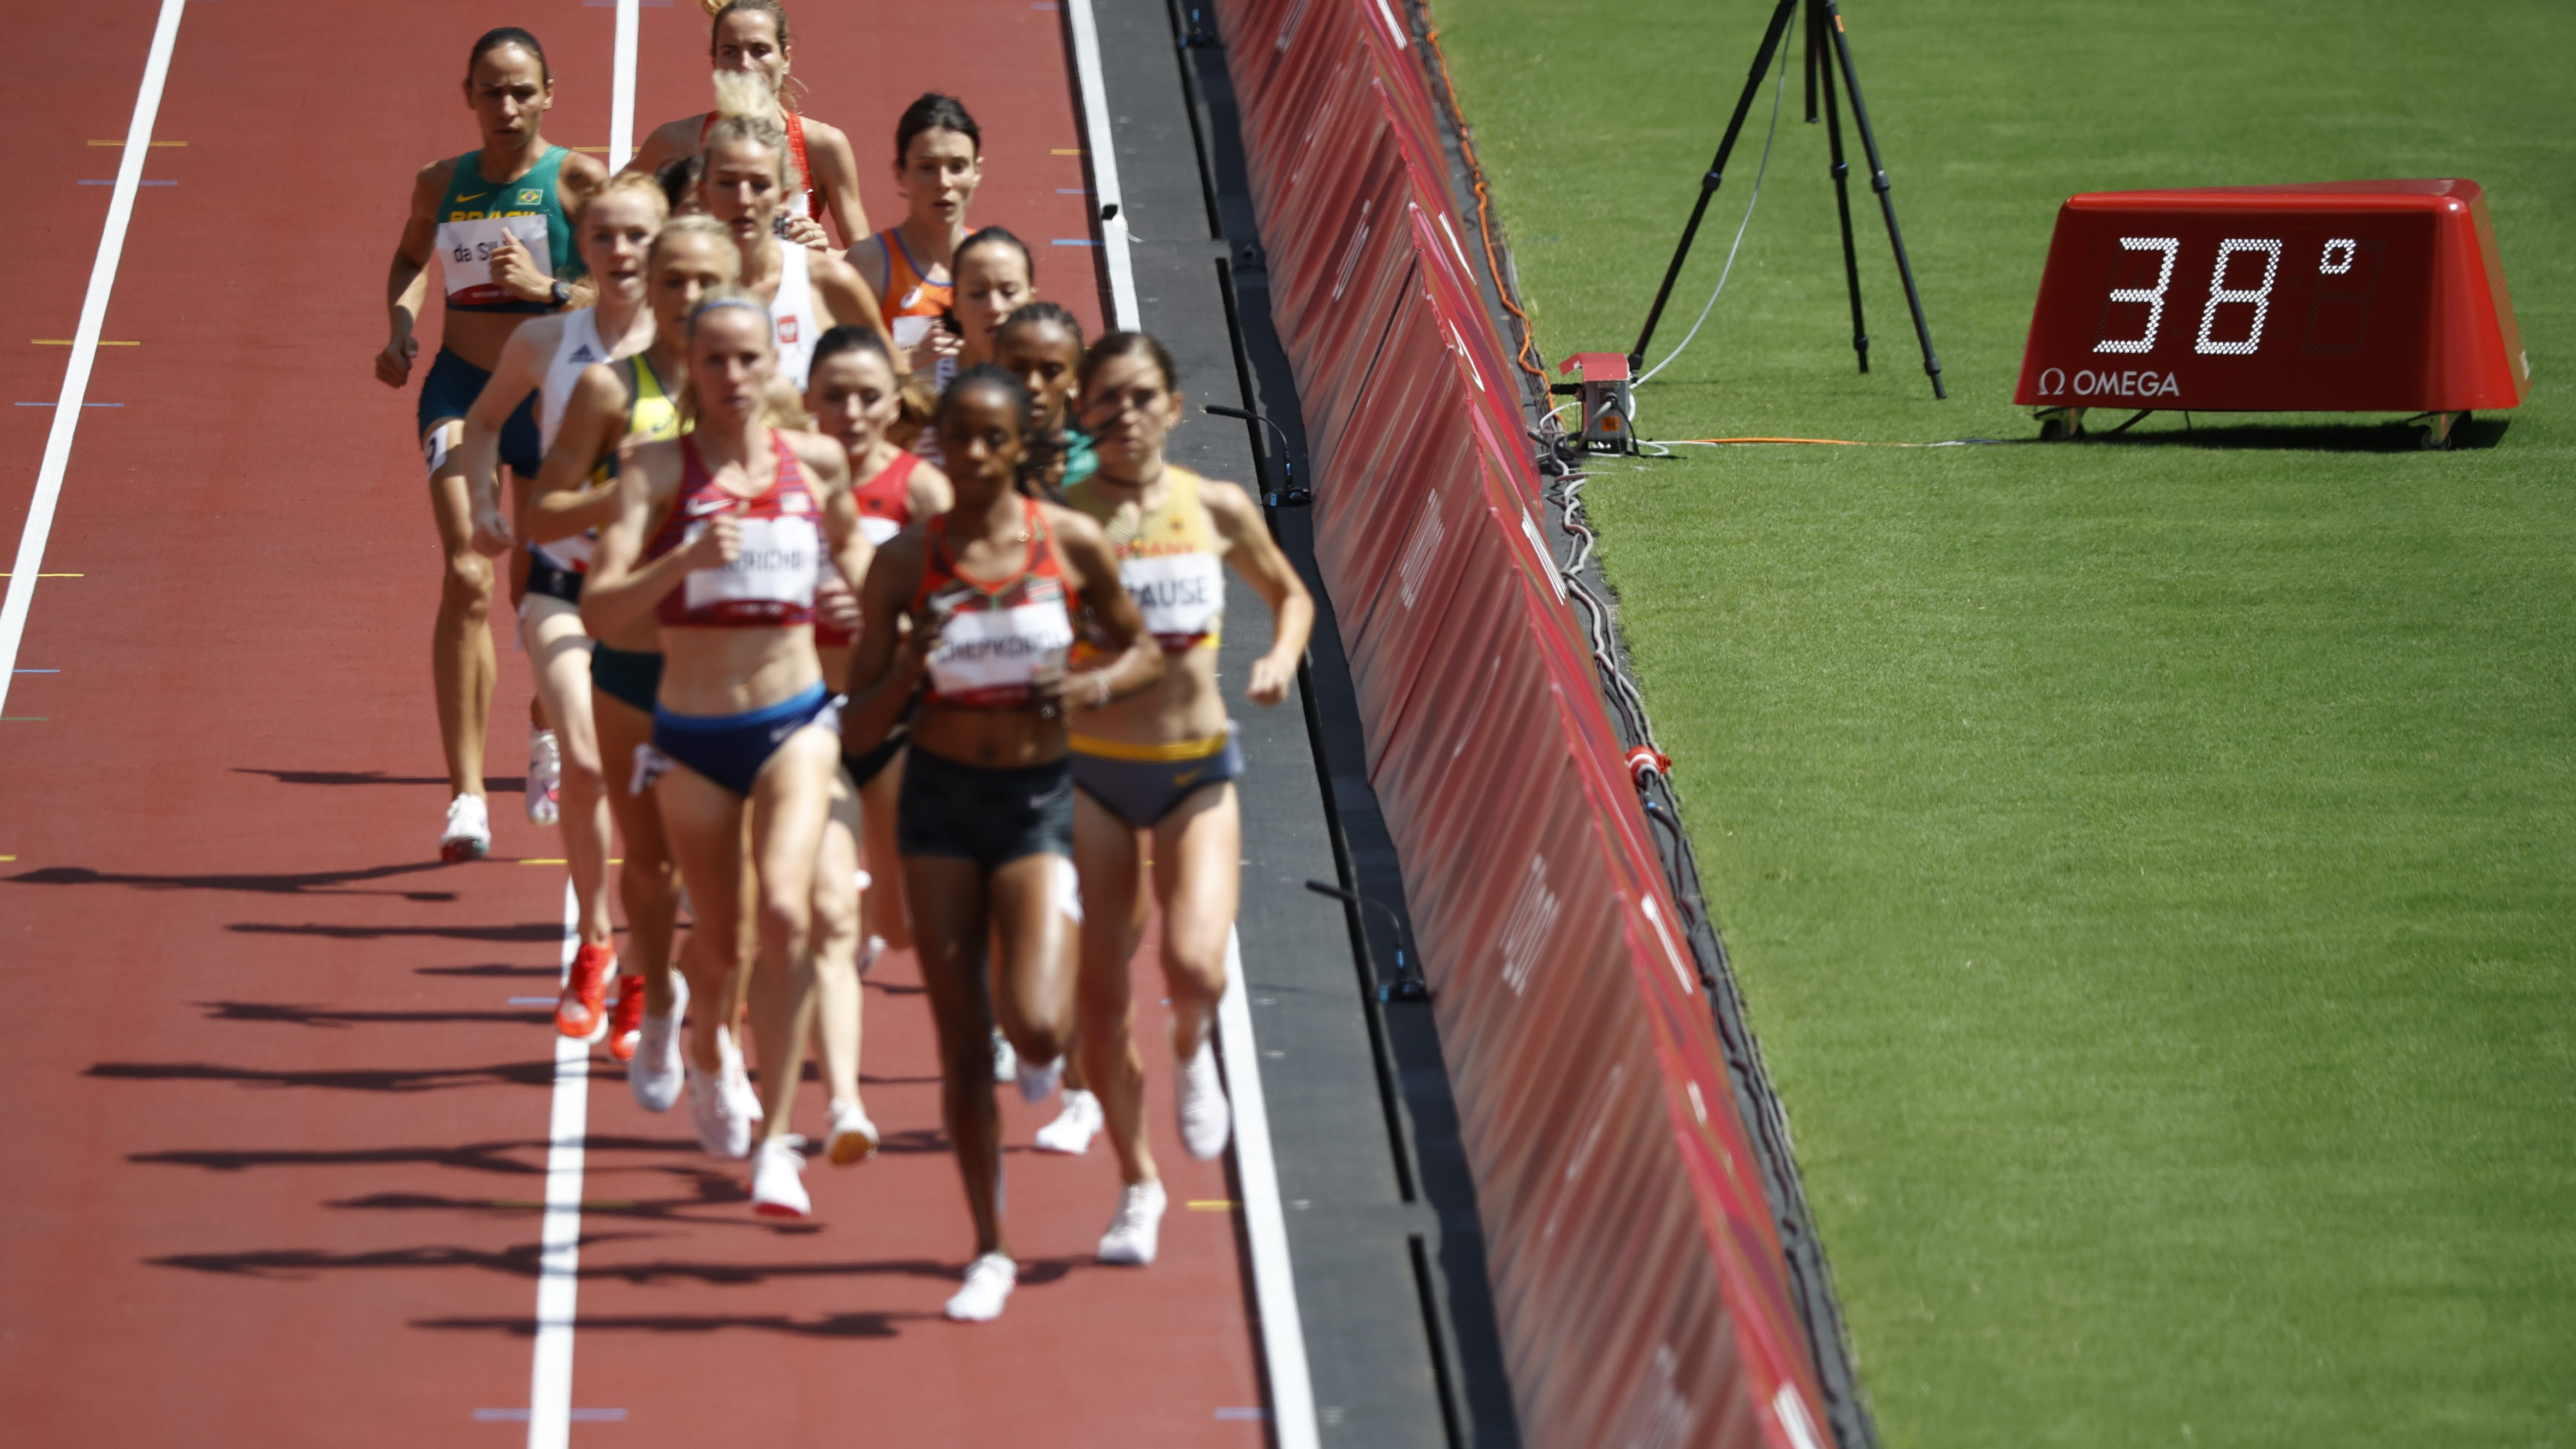 Women participate in the 3000m steeplechase beside a thermometer that lists the temperature at 38˚C (100.4˚F)